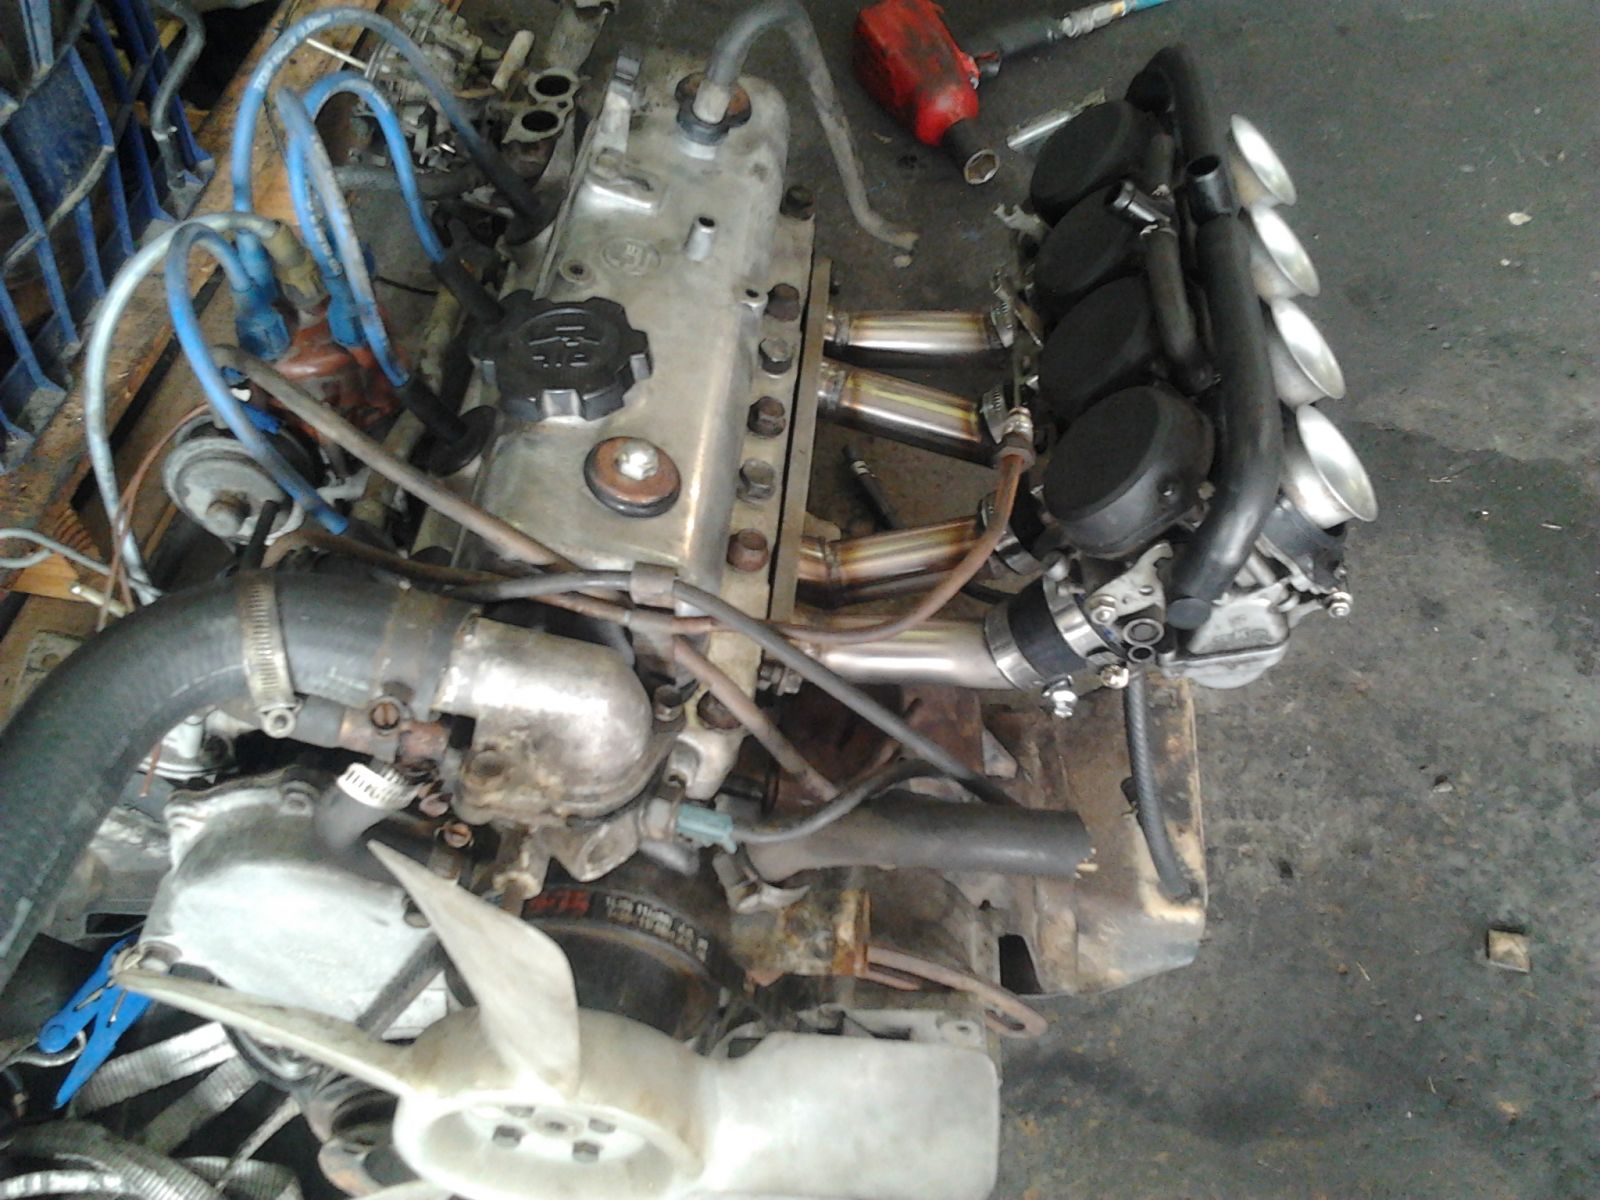 5k and CBR600 carbs for the ke11